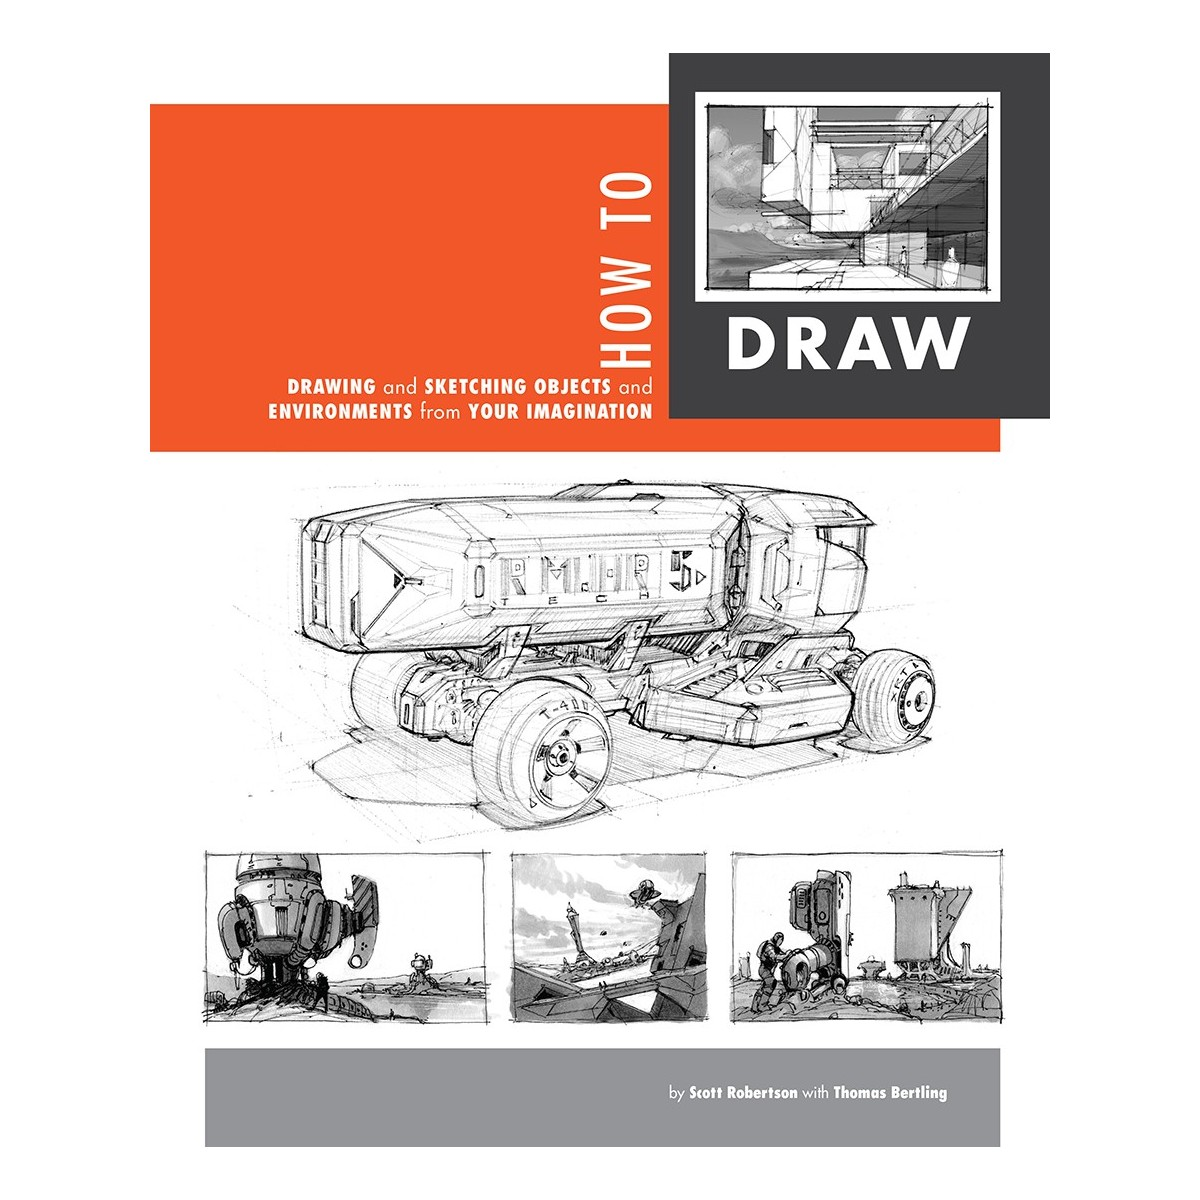 Scott Robertson and Thomas Bertling - How To Draw